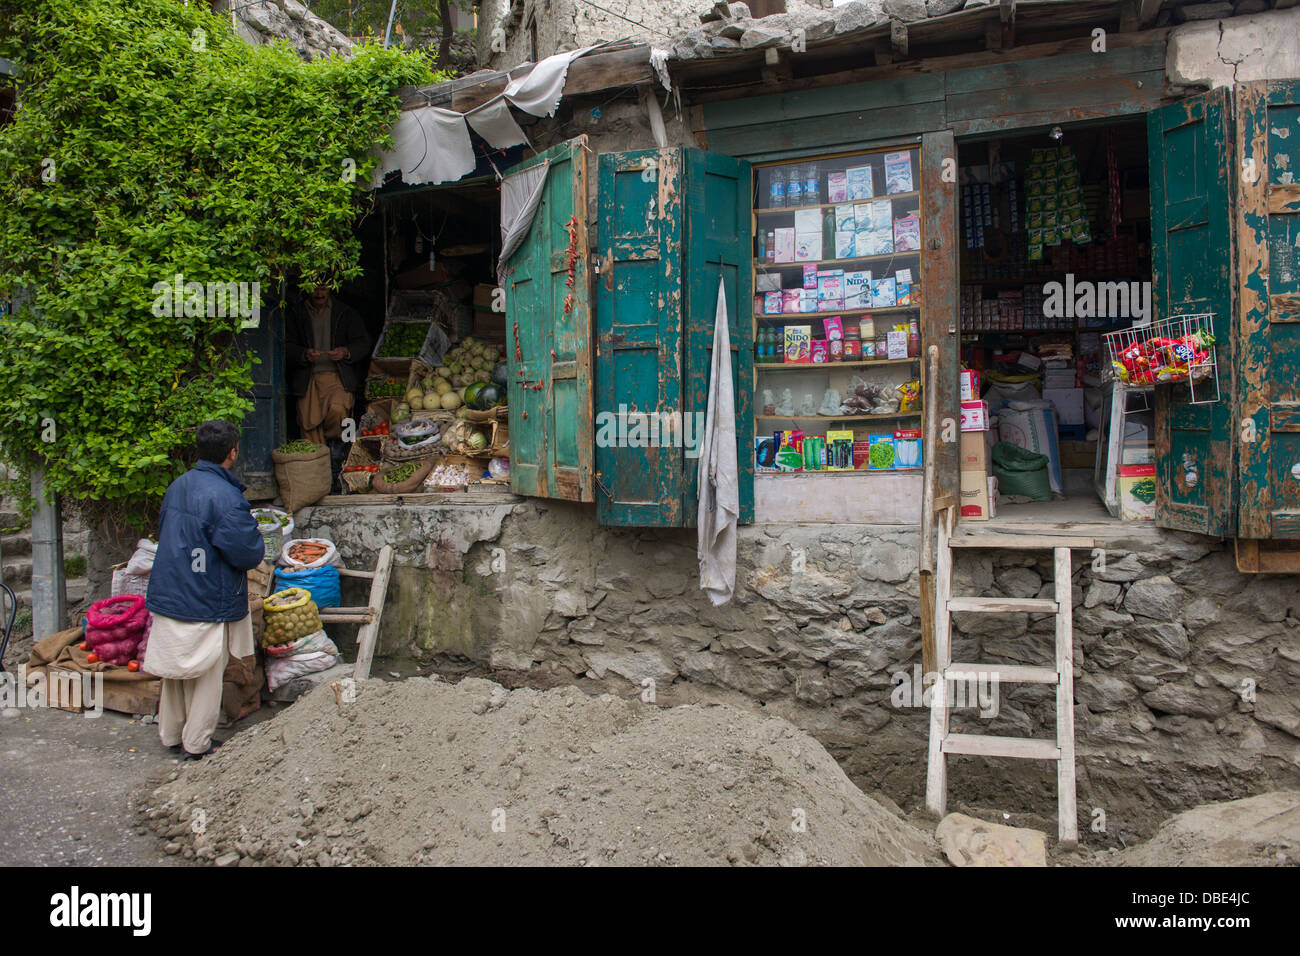 Traditional shops on the road to the fort, Karimabad, Hunza Valley, Gilgit-Baltistan, Pakistan - Stock Image